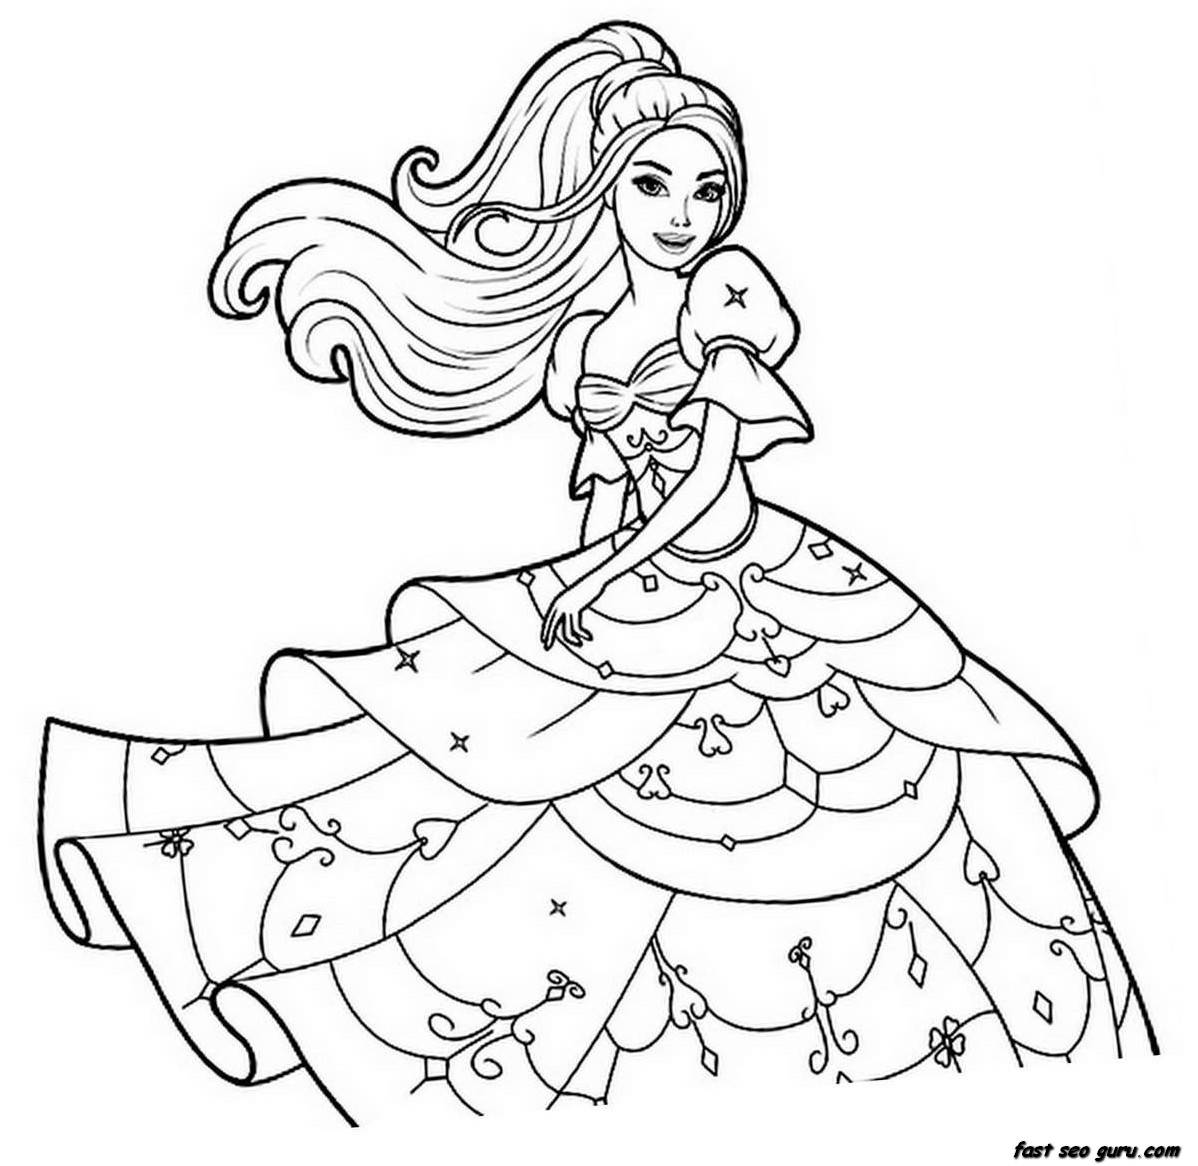 coloring pages for girls only - photo#4